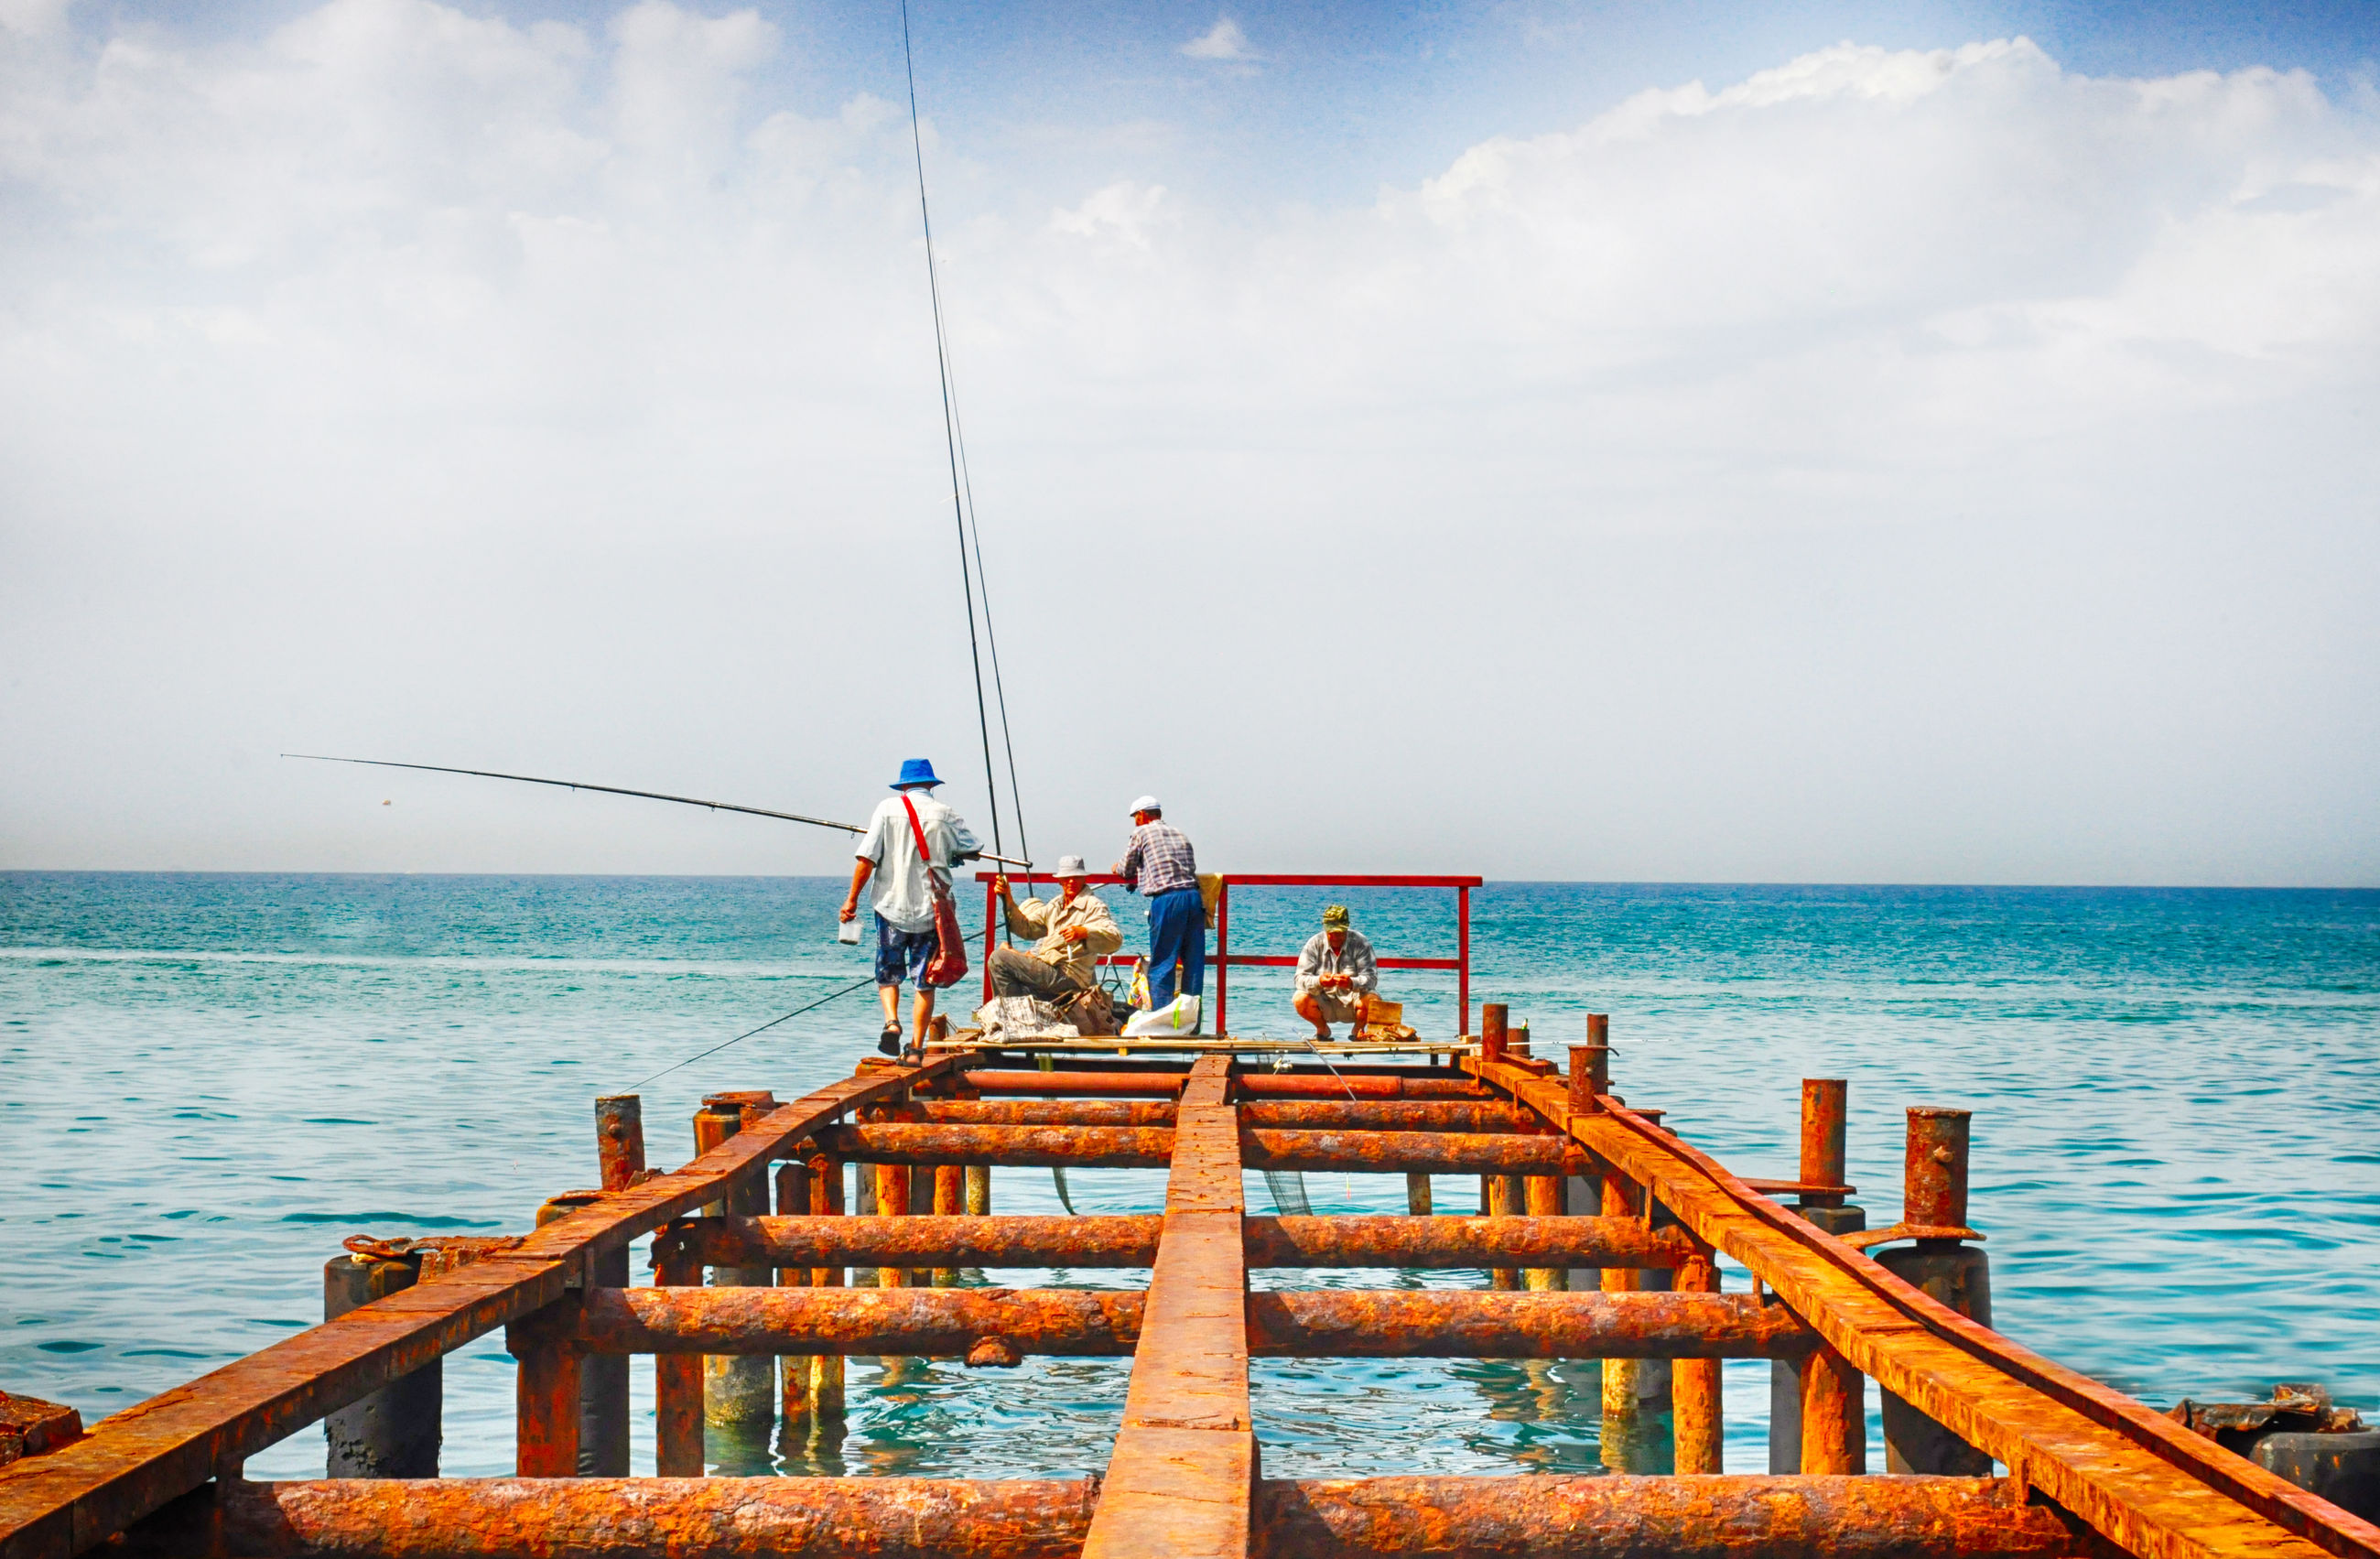 sea, water, horizon over water, men, sky, leisure activity, lifestyles, railing, pier, nature, scenics, person, medium group of people, blue, vacations, togetherness, beauty in nature, nautical vessel